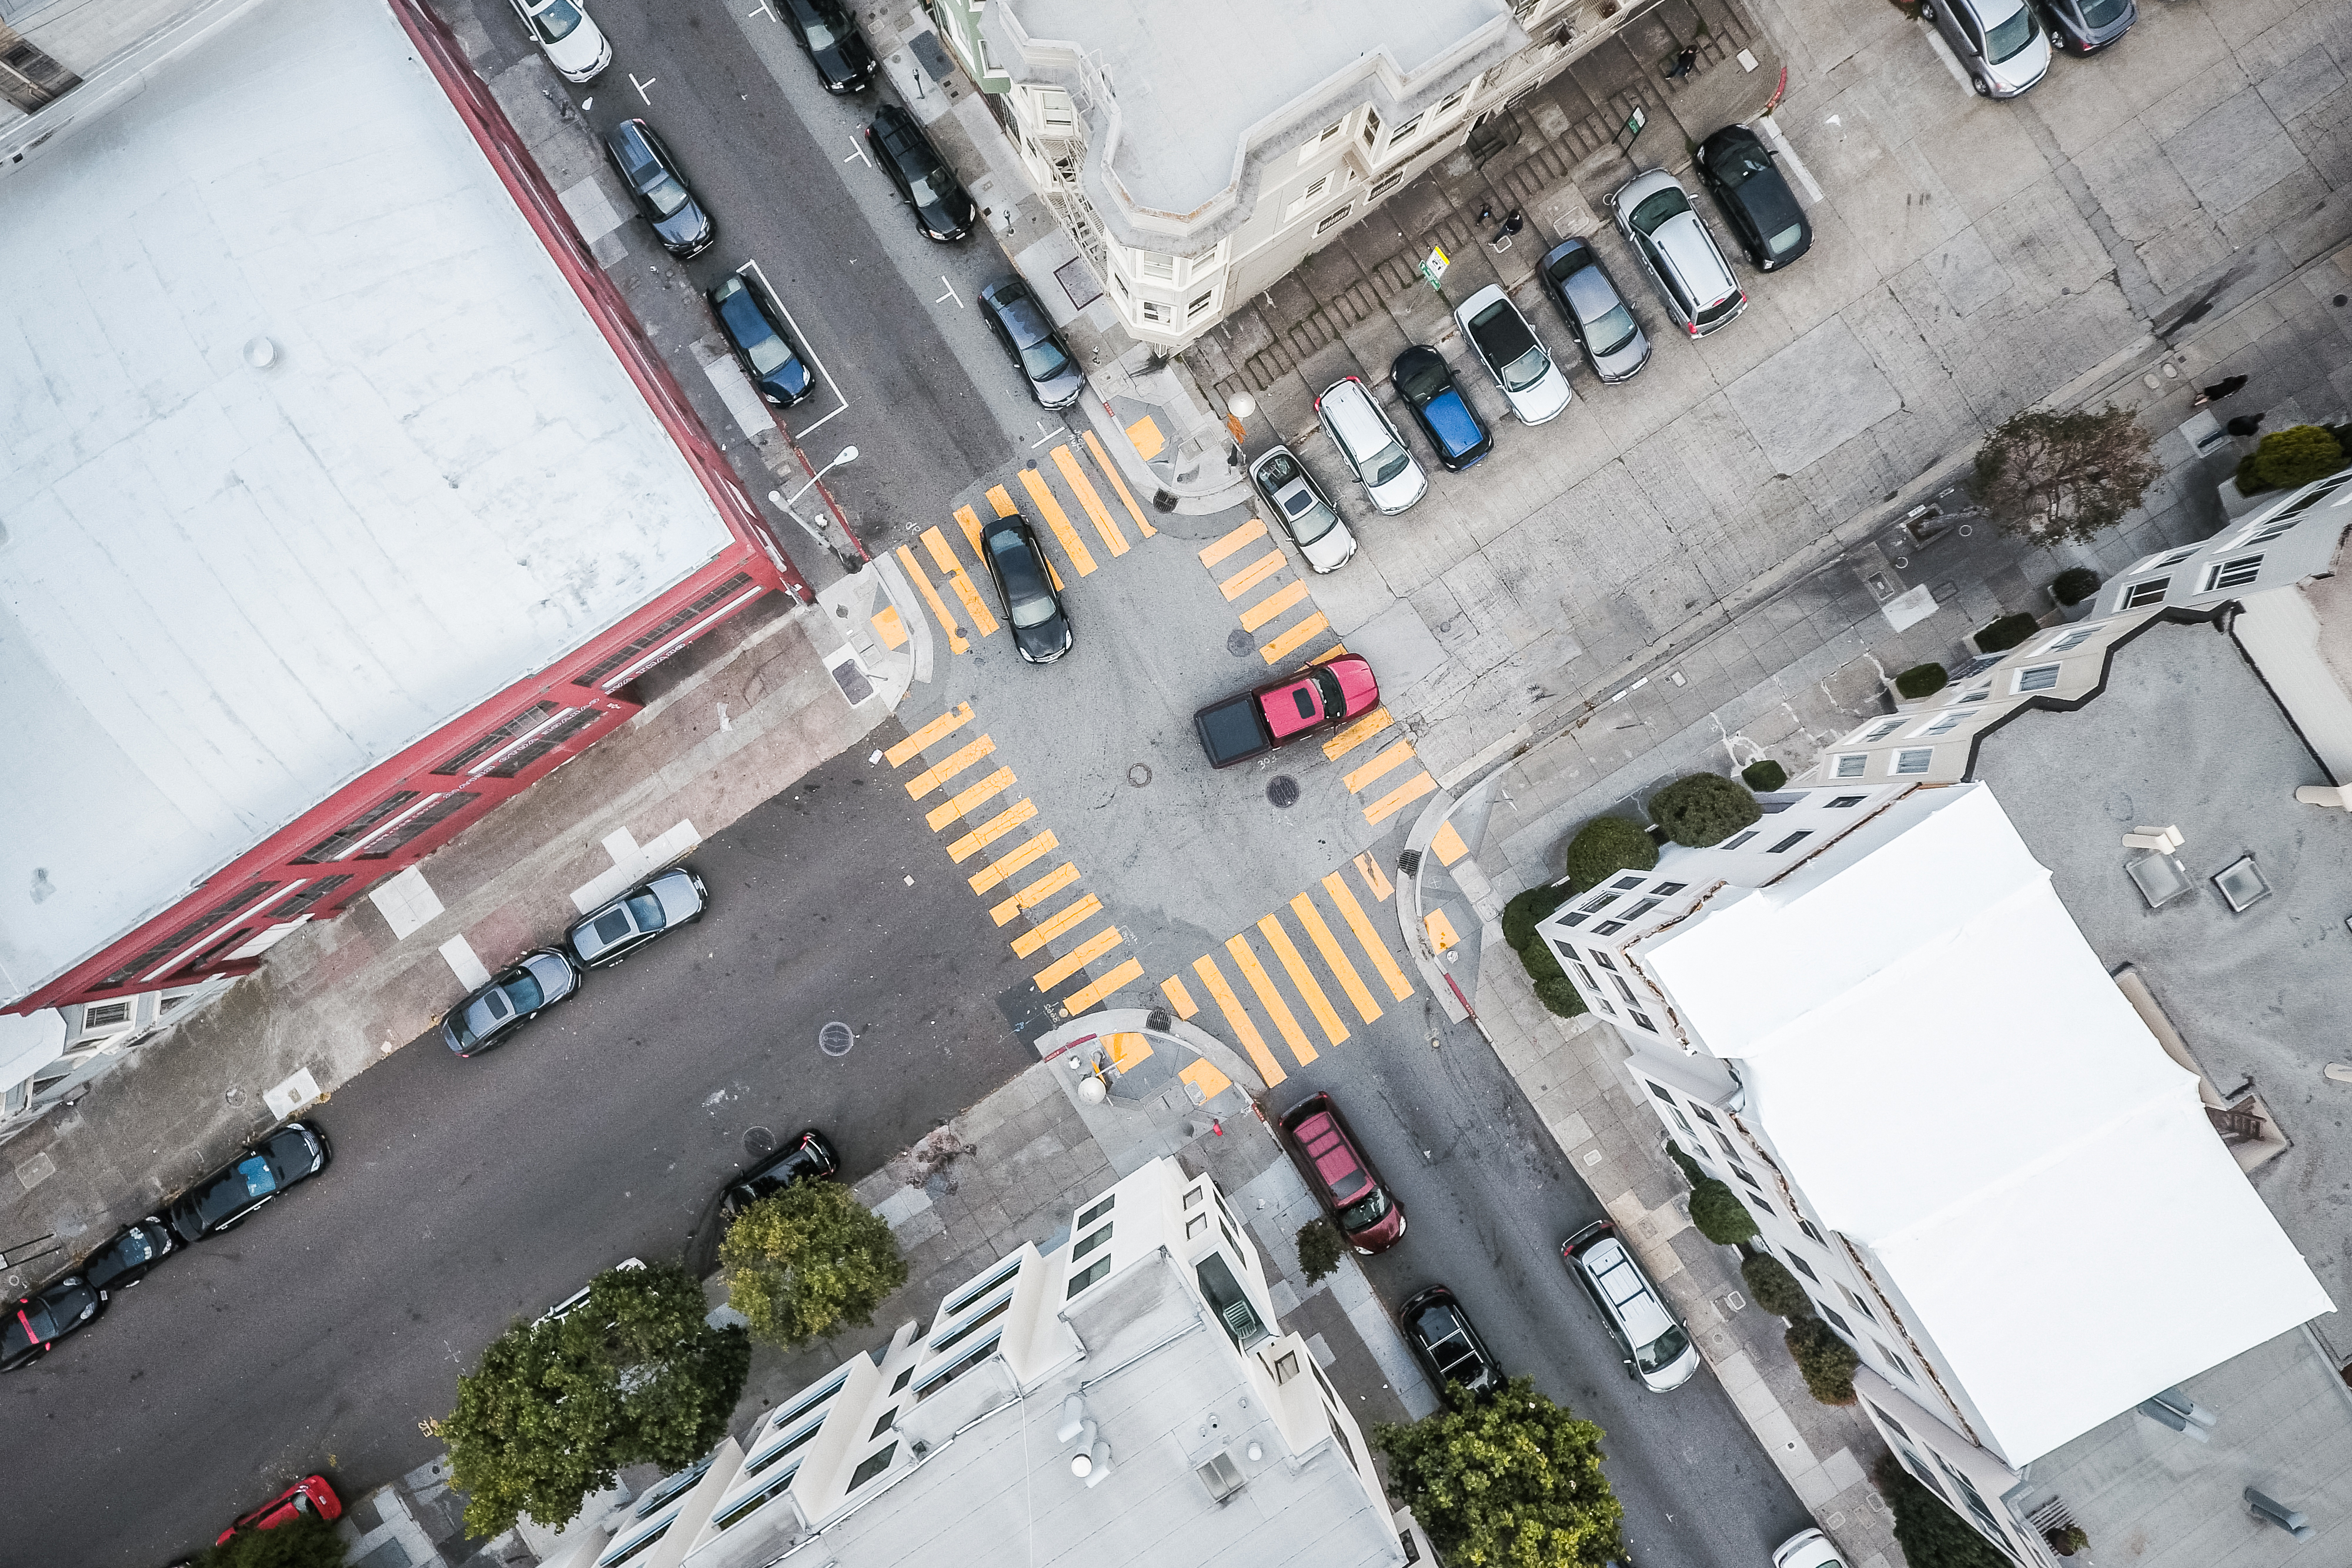 Street Road Intersection From Above Free Stock Photo Picjumbo